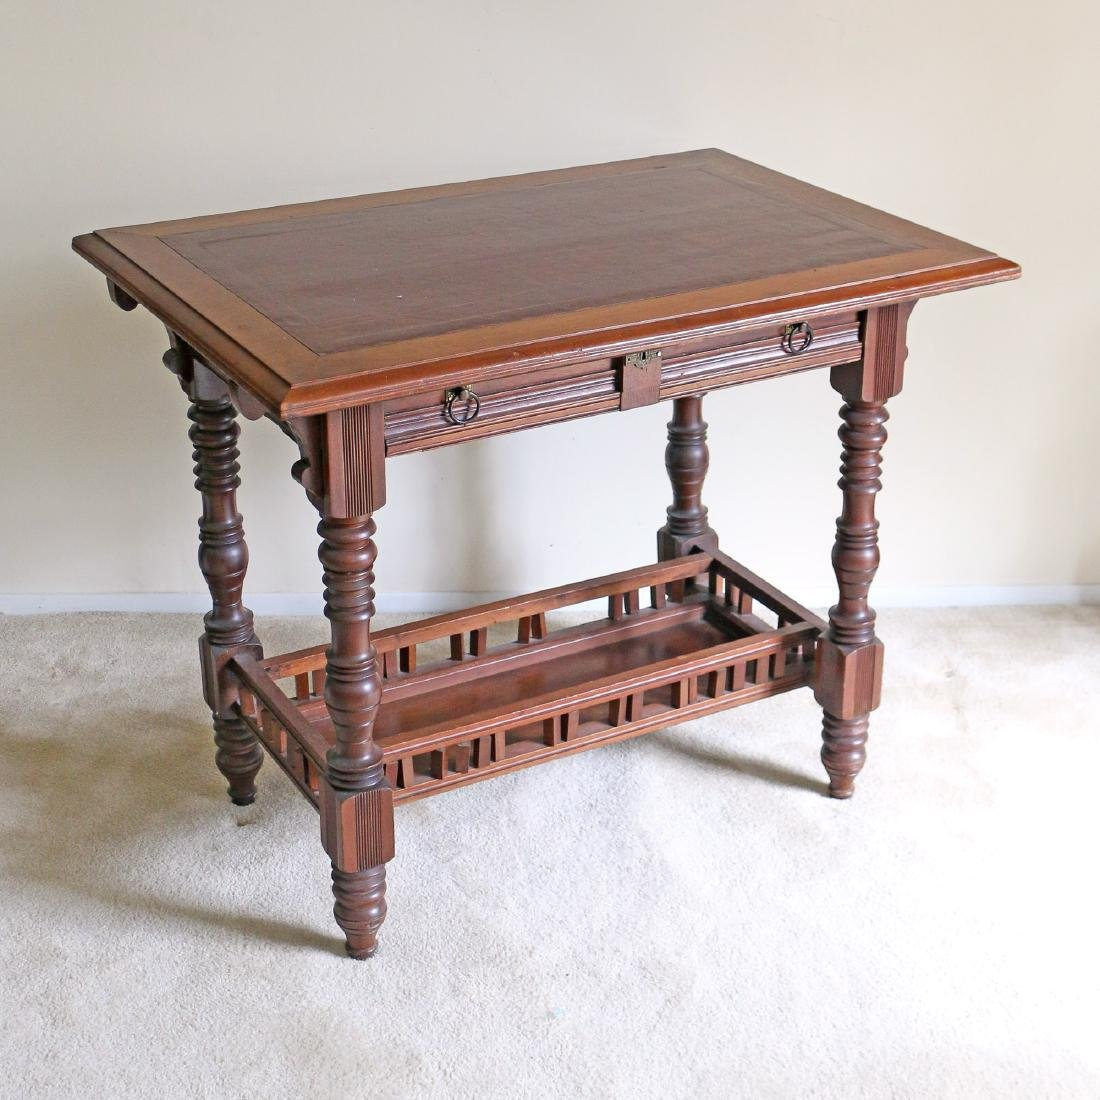 ARTS & CRAFTS LADY'S WRITING TABLE